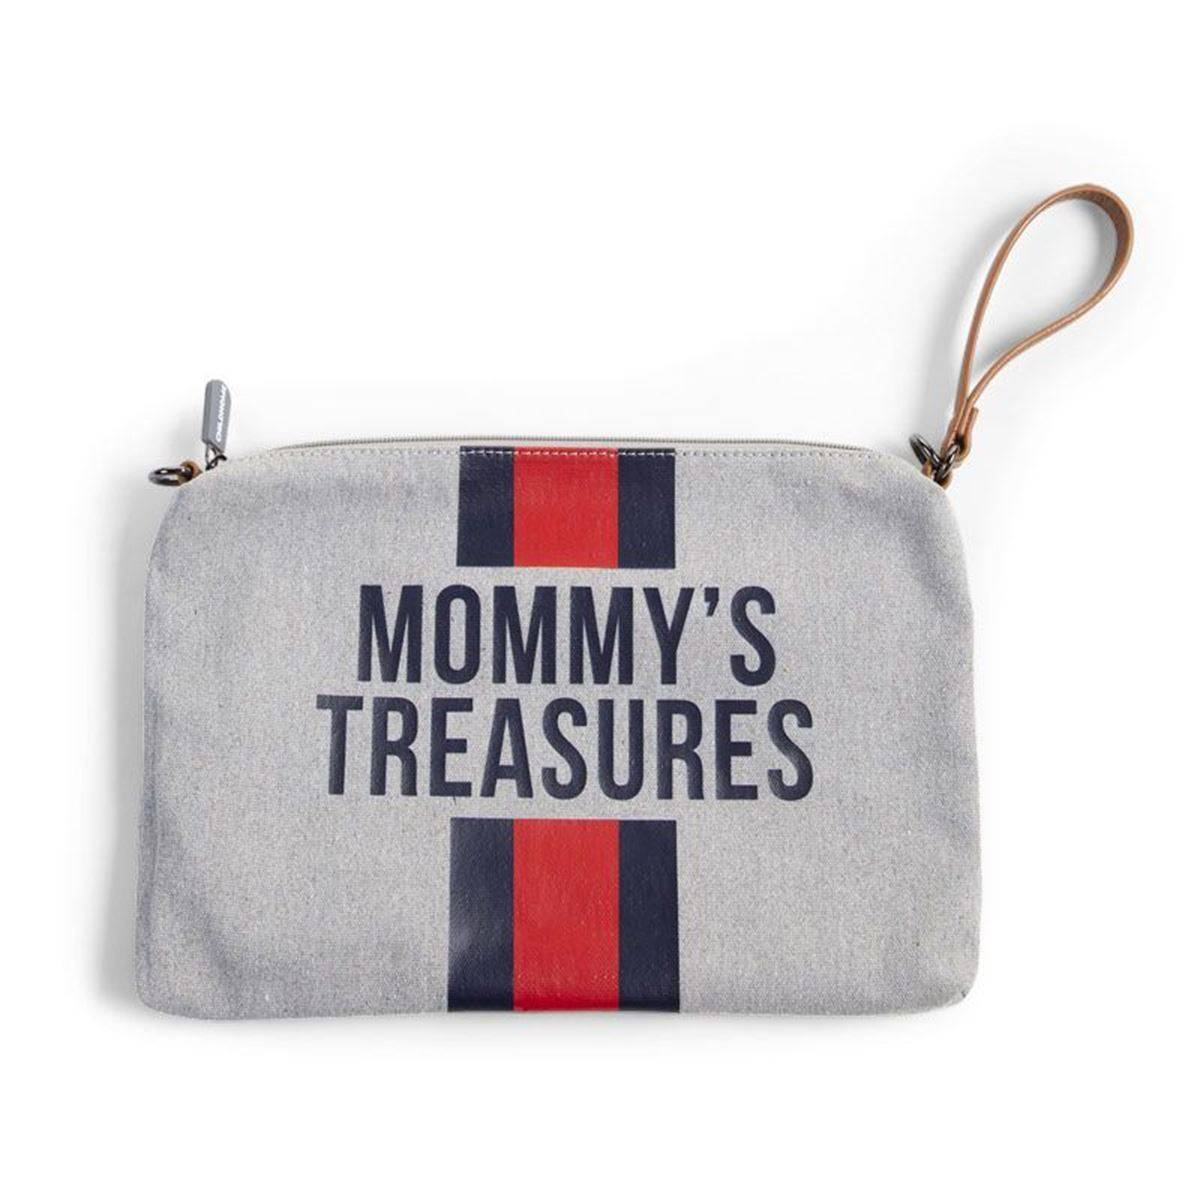 Childhome Mommy Bag Clutch, Gr + Rd/Bl